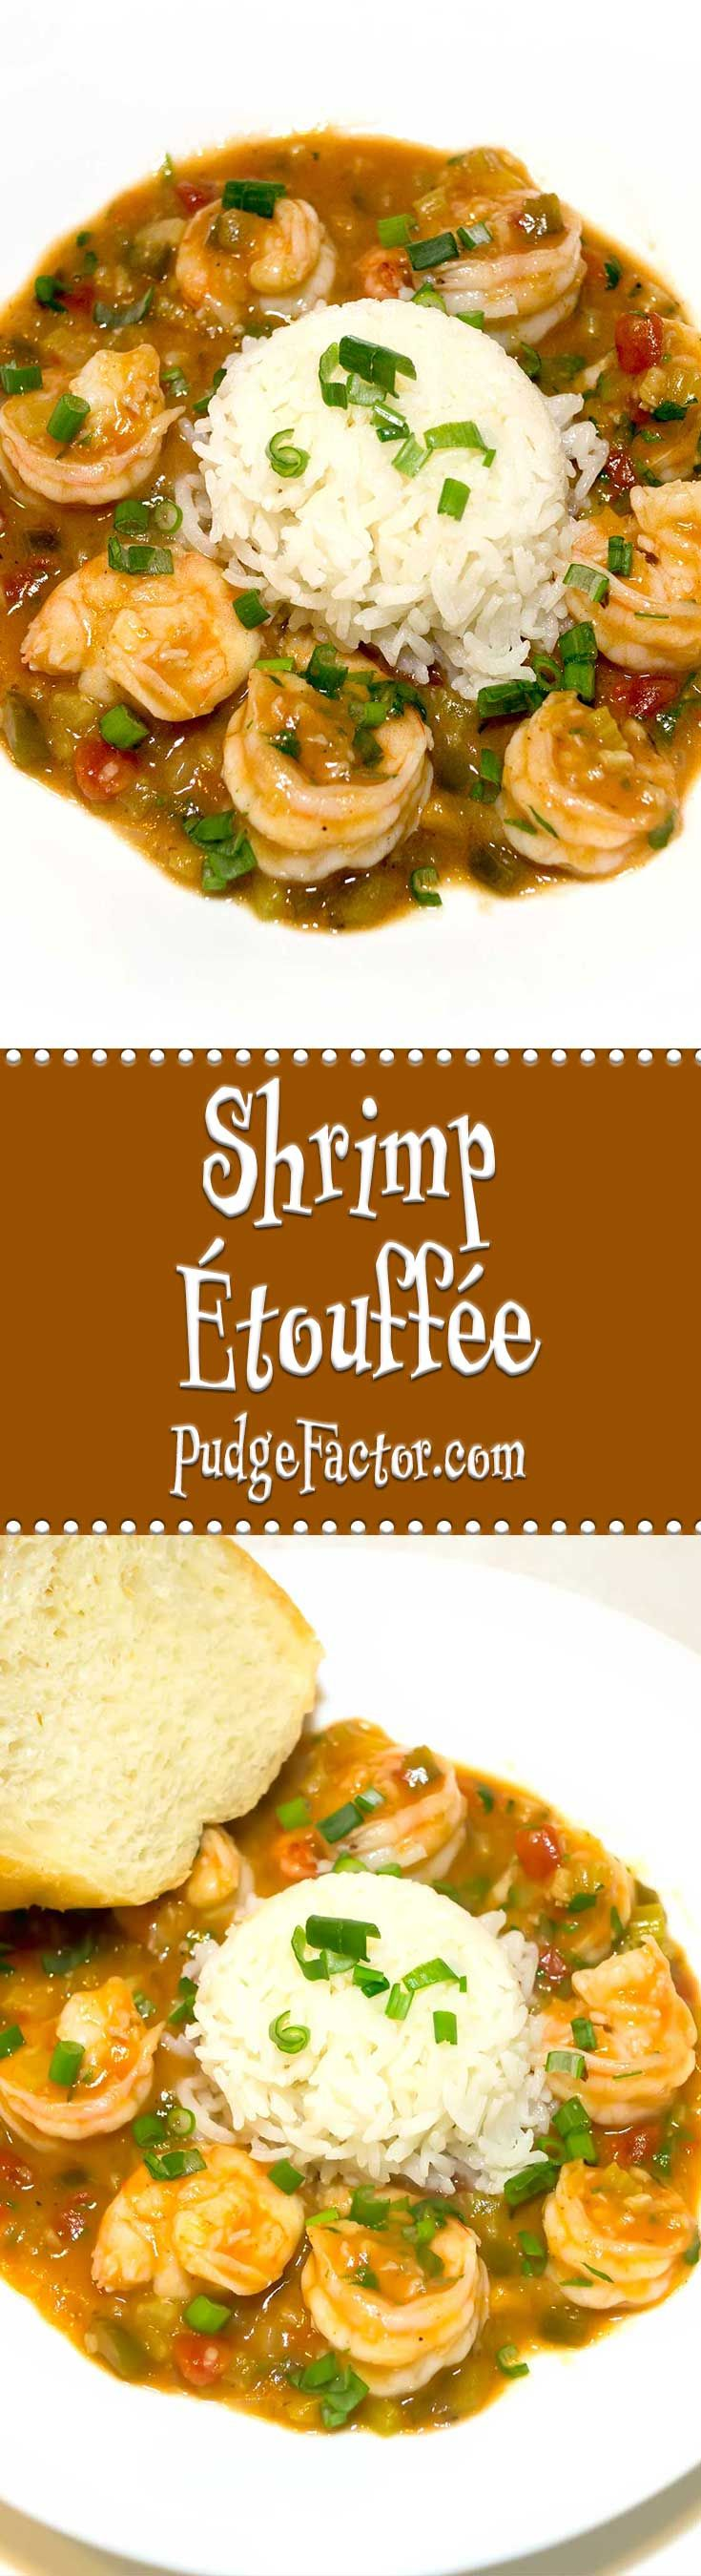 Shrimp Étouffée is a classic New Orleans dish with spicy shrimp in a delicious roux based sauce - a perfect meal to celebrate Mardi Gras.  via @c2king